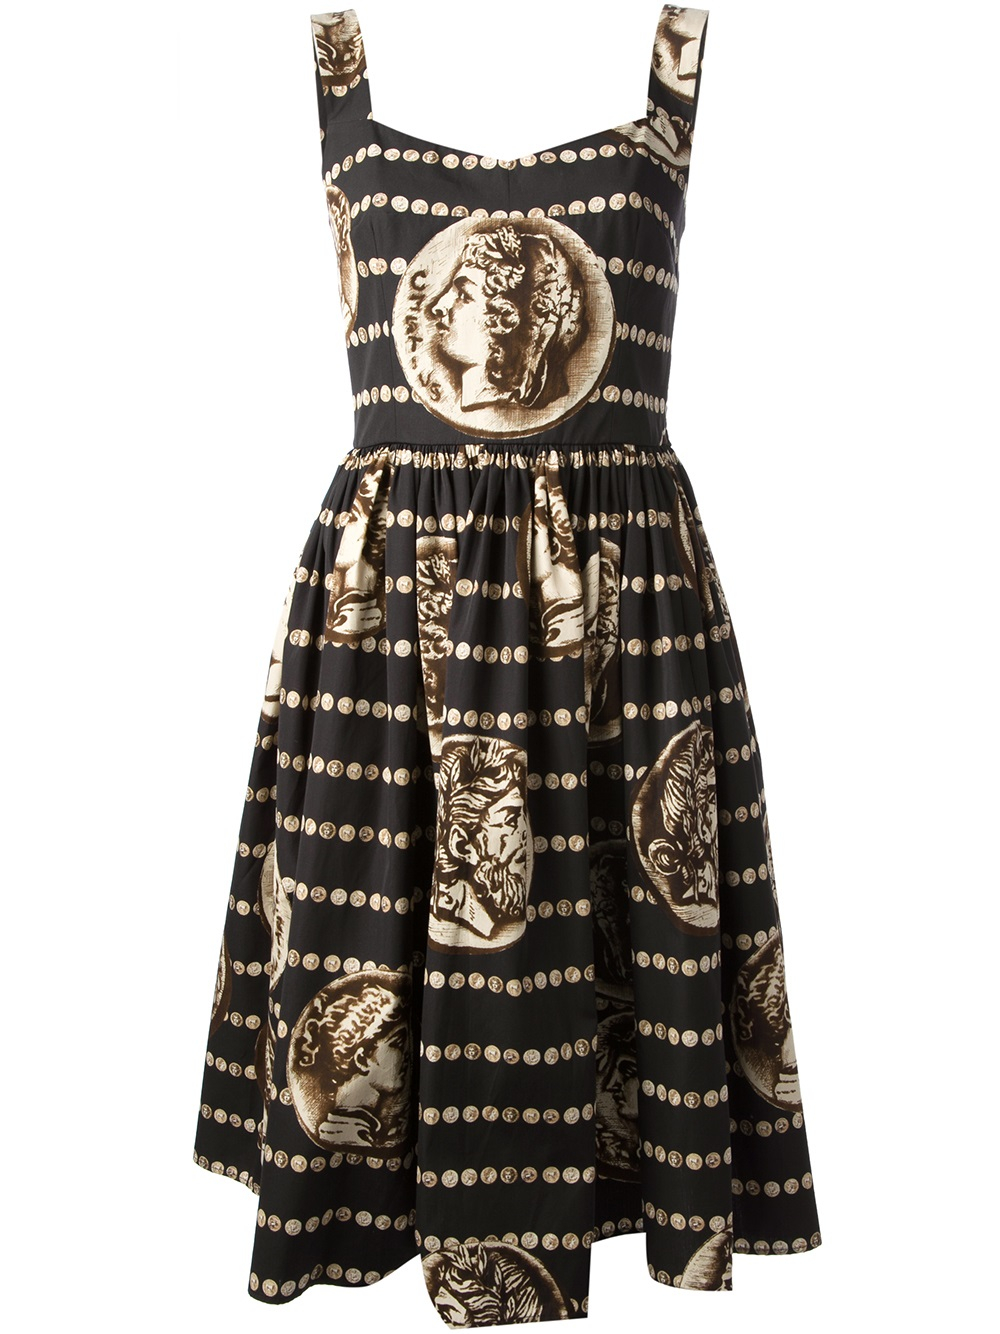 Coin Collection For Sale >> Dolce & Gabbana Roman Coin Print Dress in Black | Lyst